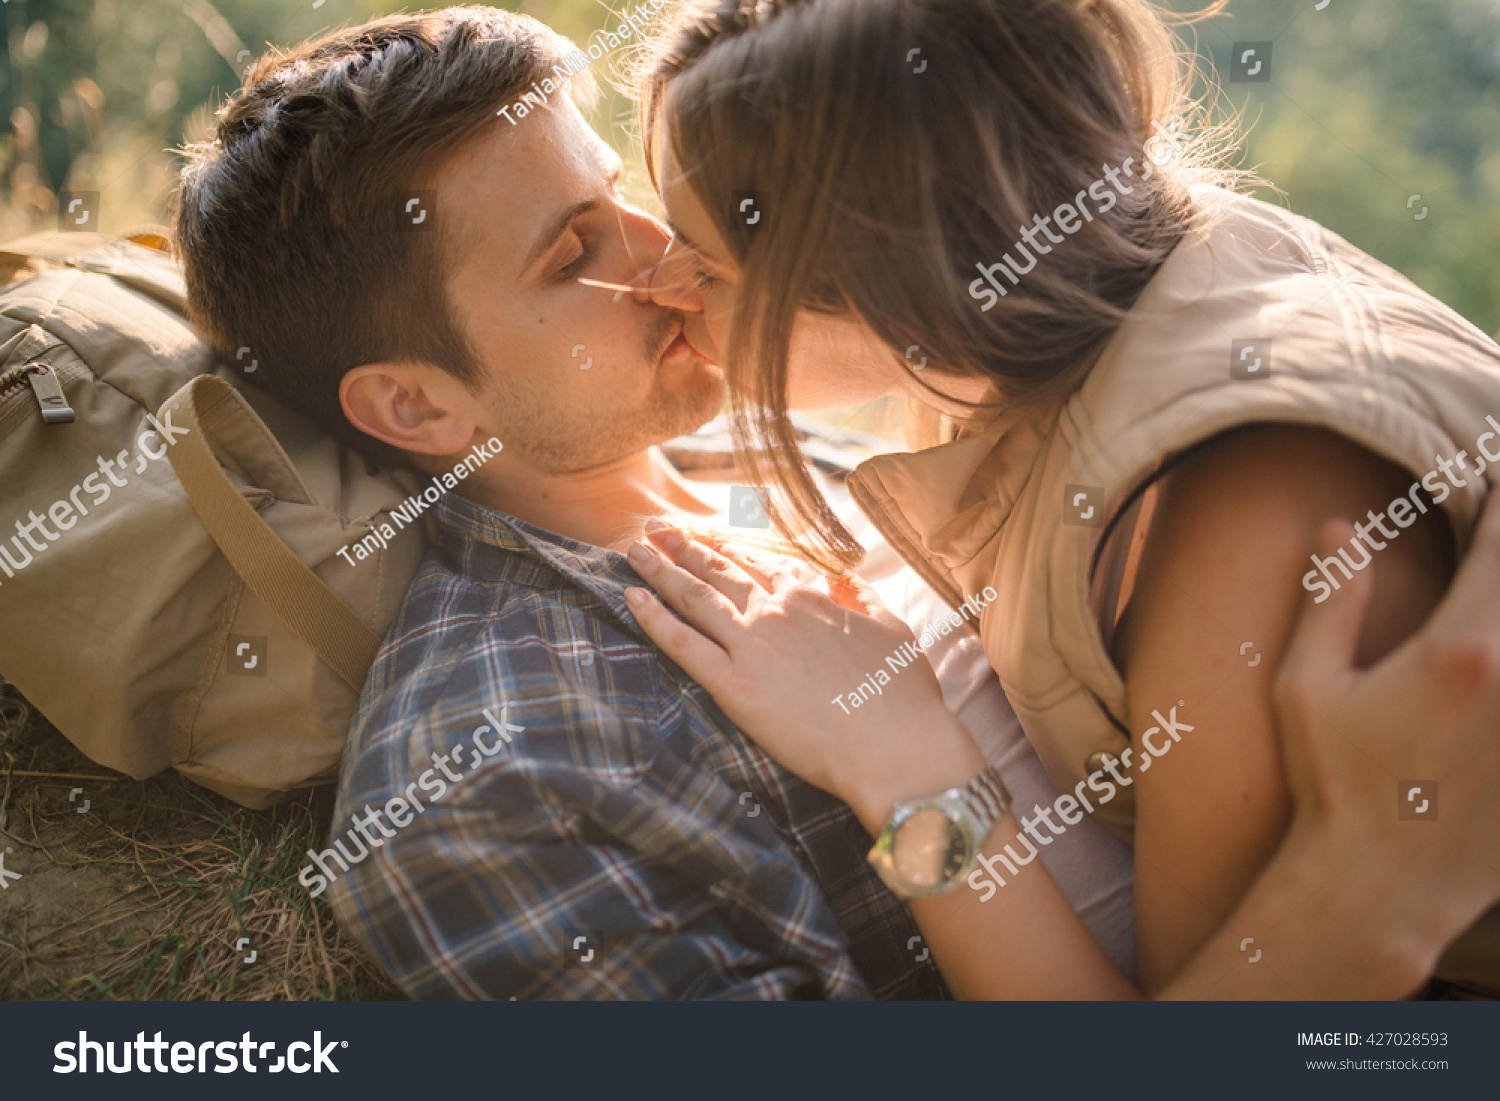 how to kiss passionately your boyfriend